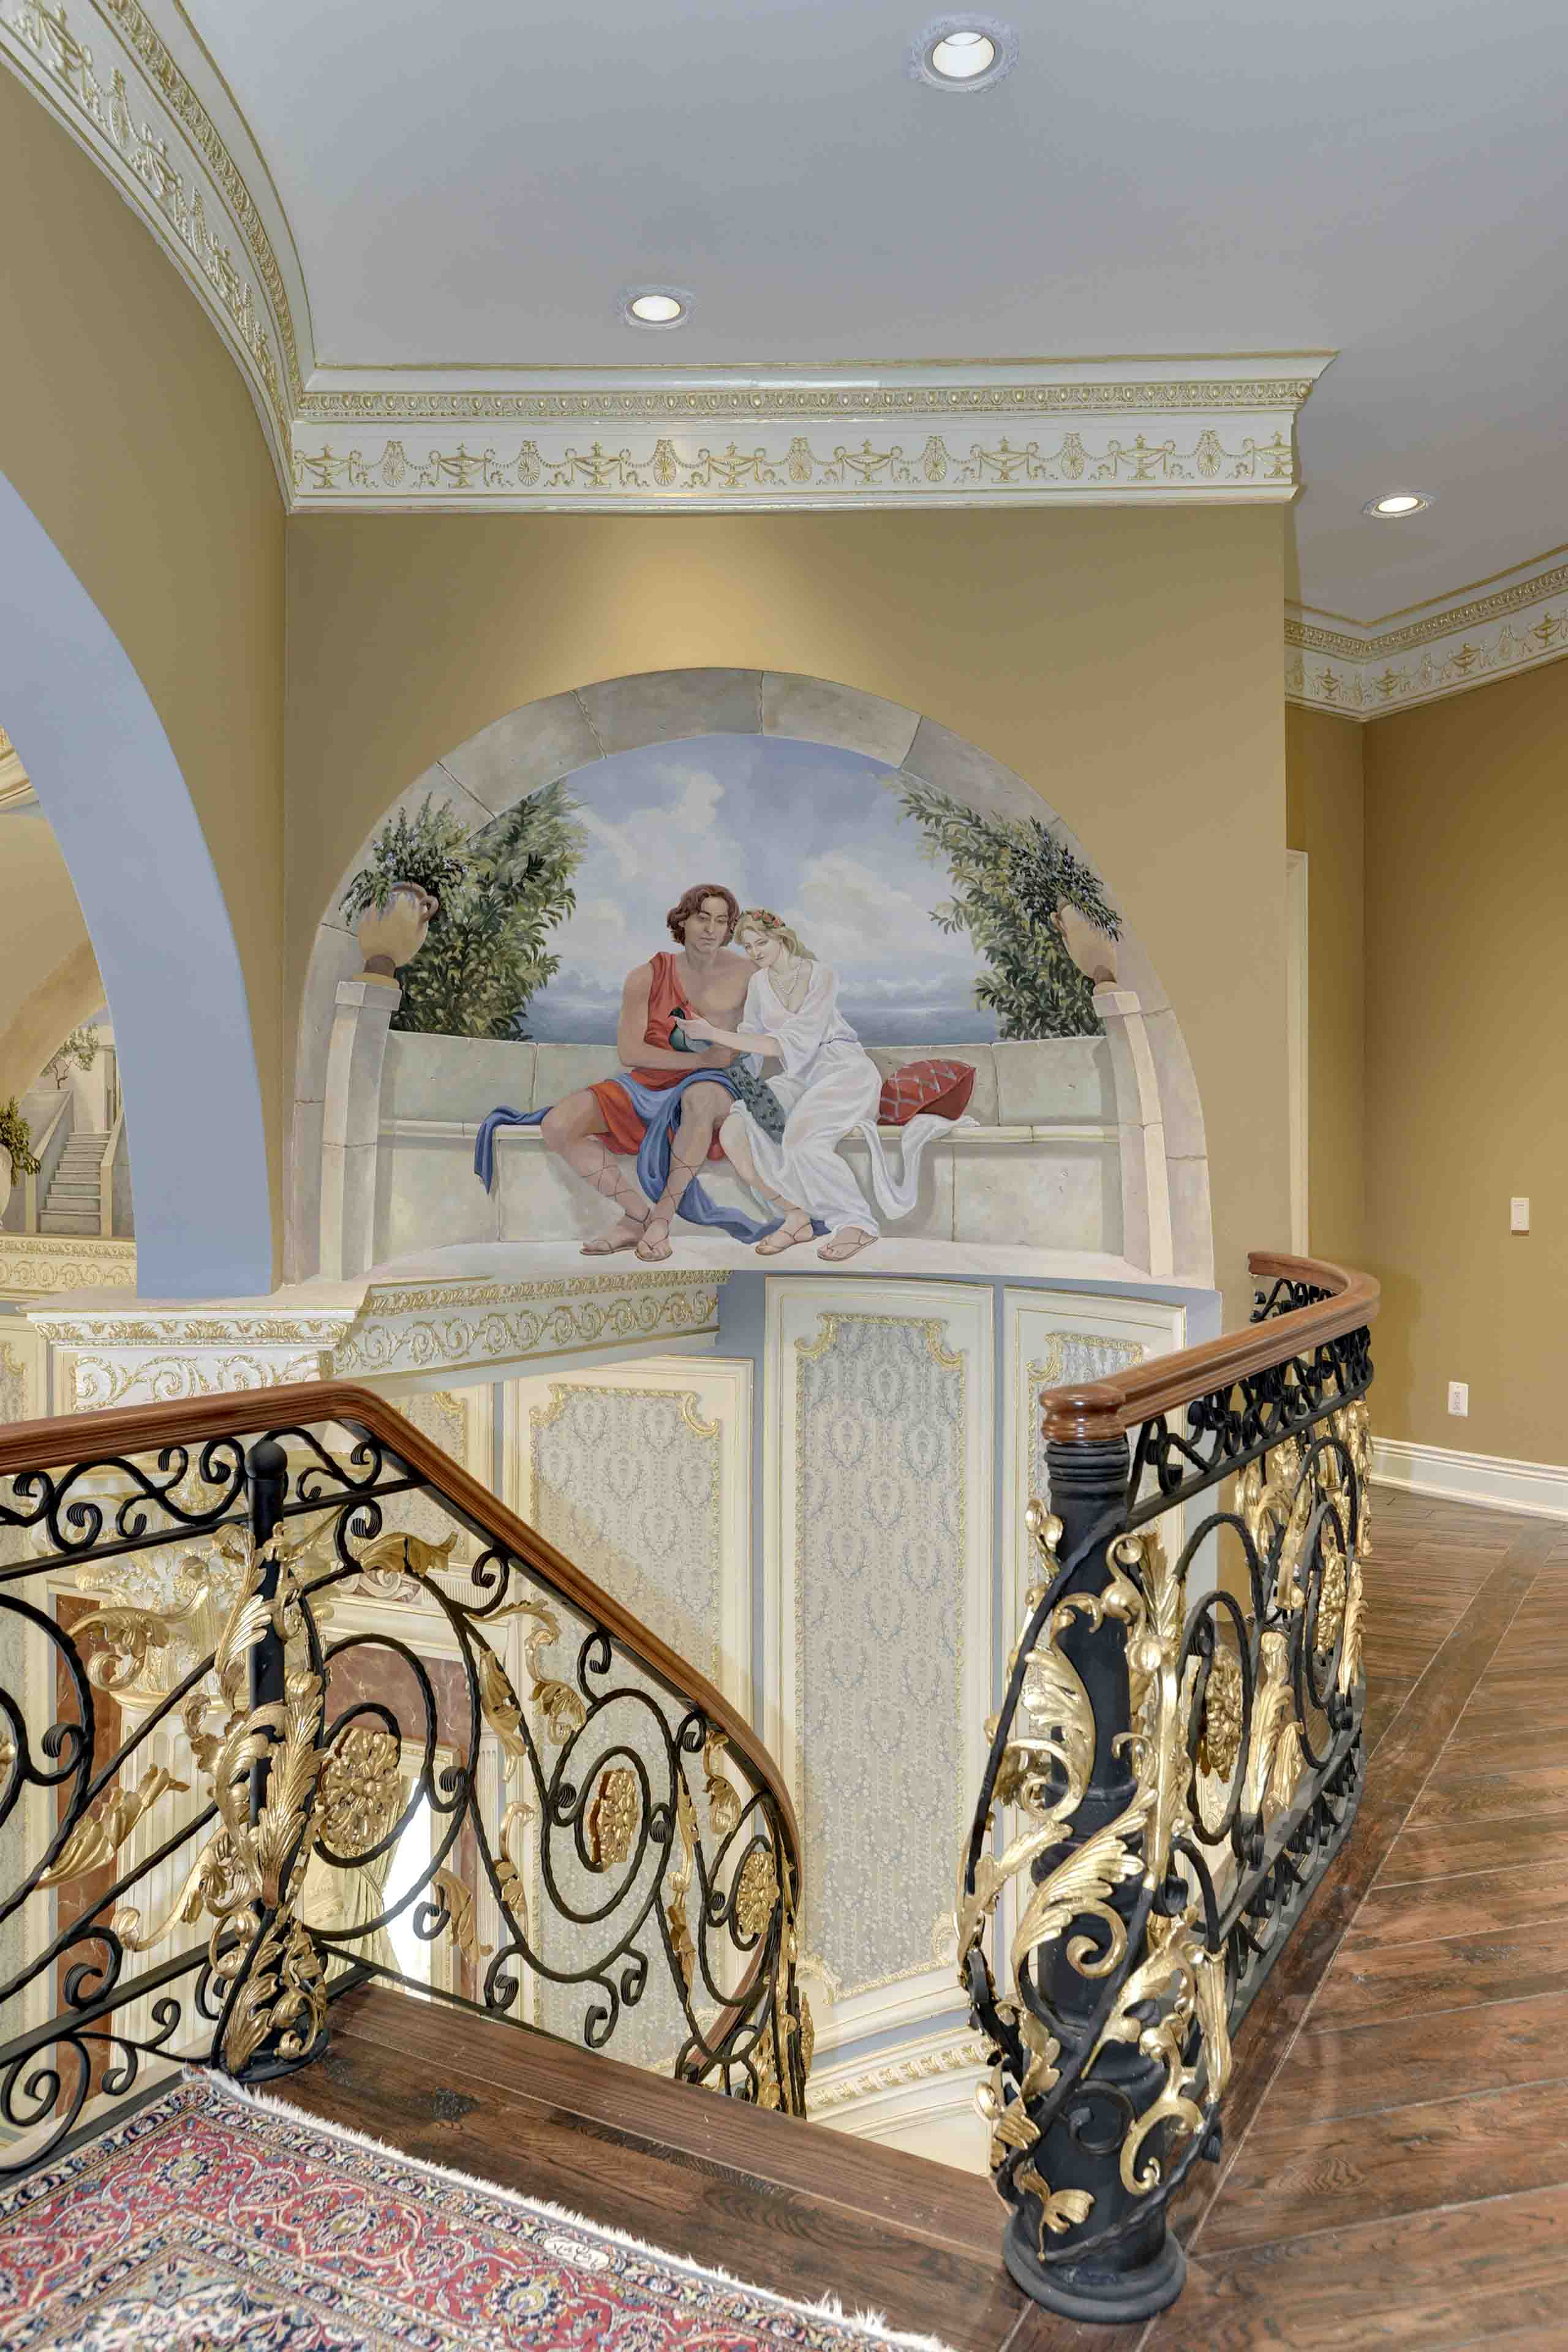 Murals painted in dome of mansion in Potomac, Maryland